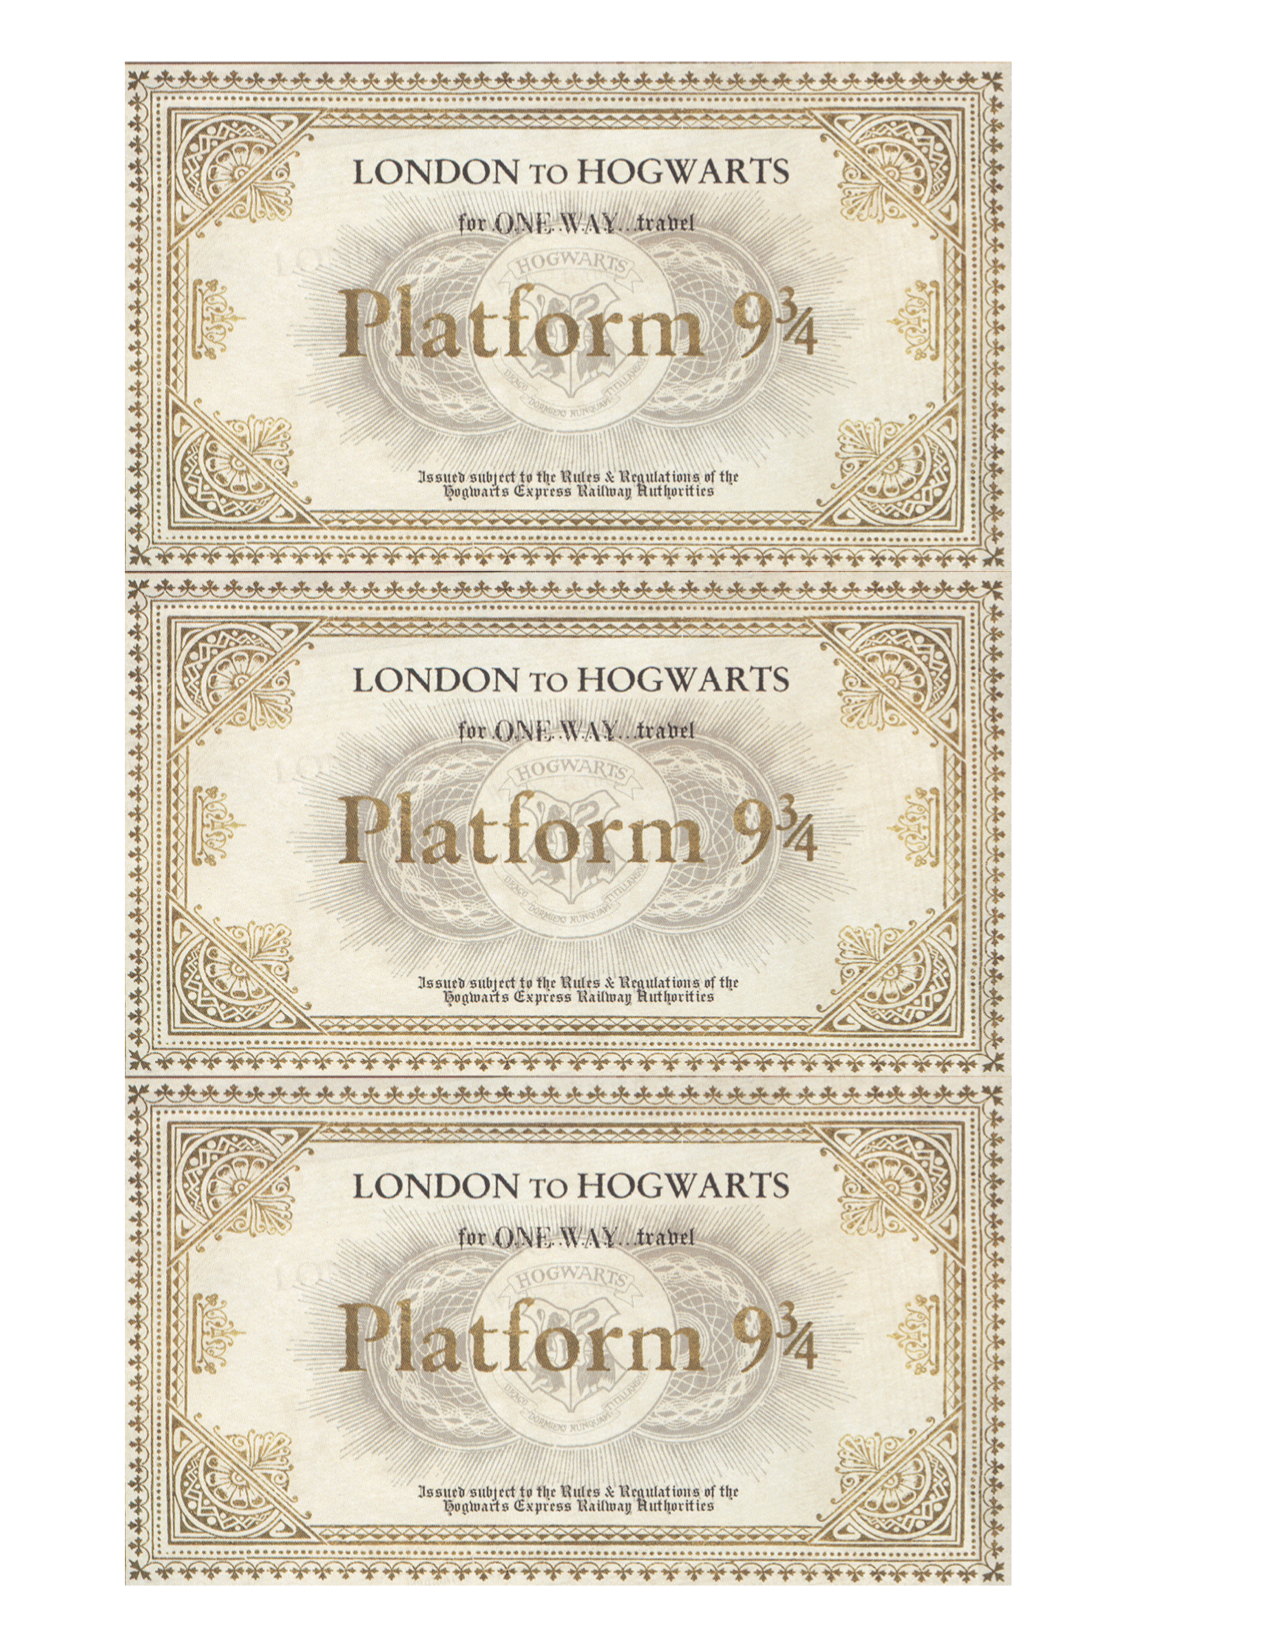 Harry potter hogwarts acceptance letter paper trail design print the platform 9 34 ticket here it looks really nice in full color with the gold but if you have parchment paper and print black and white it looks spiritdancerdesigns Gallery